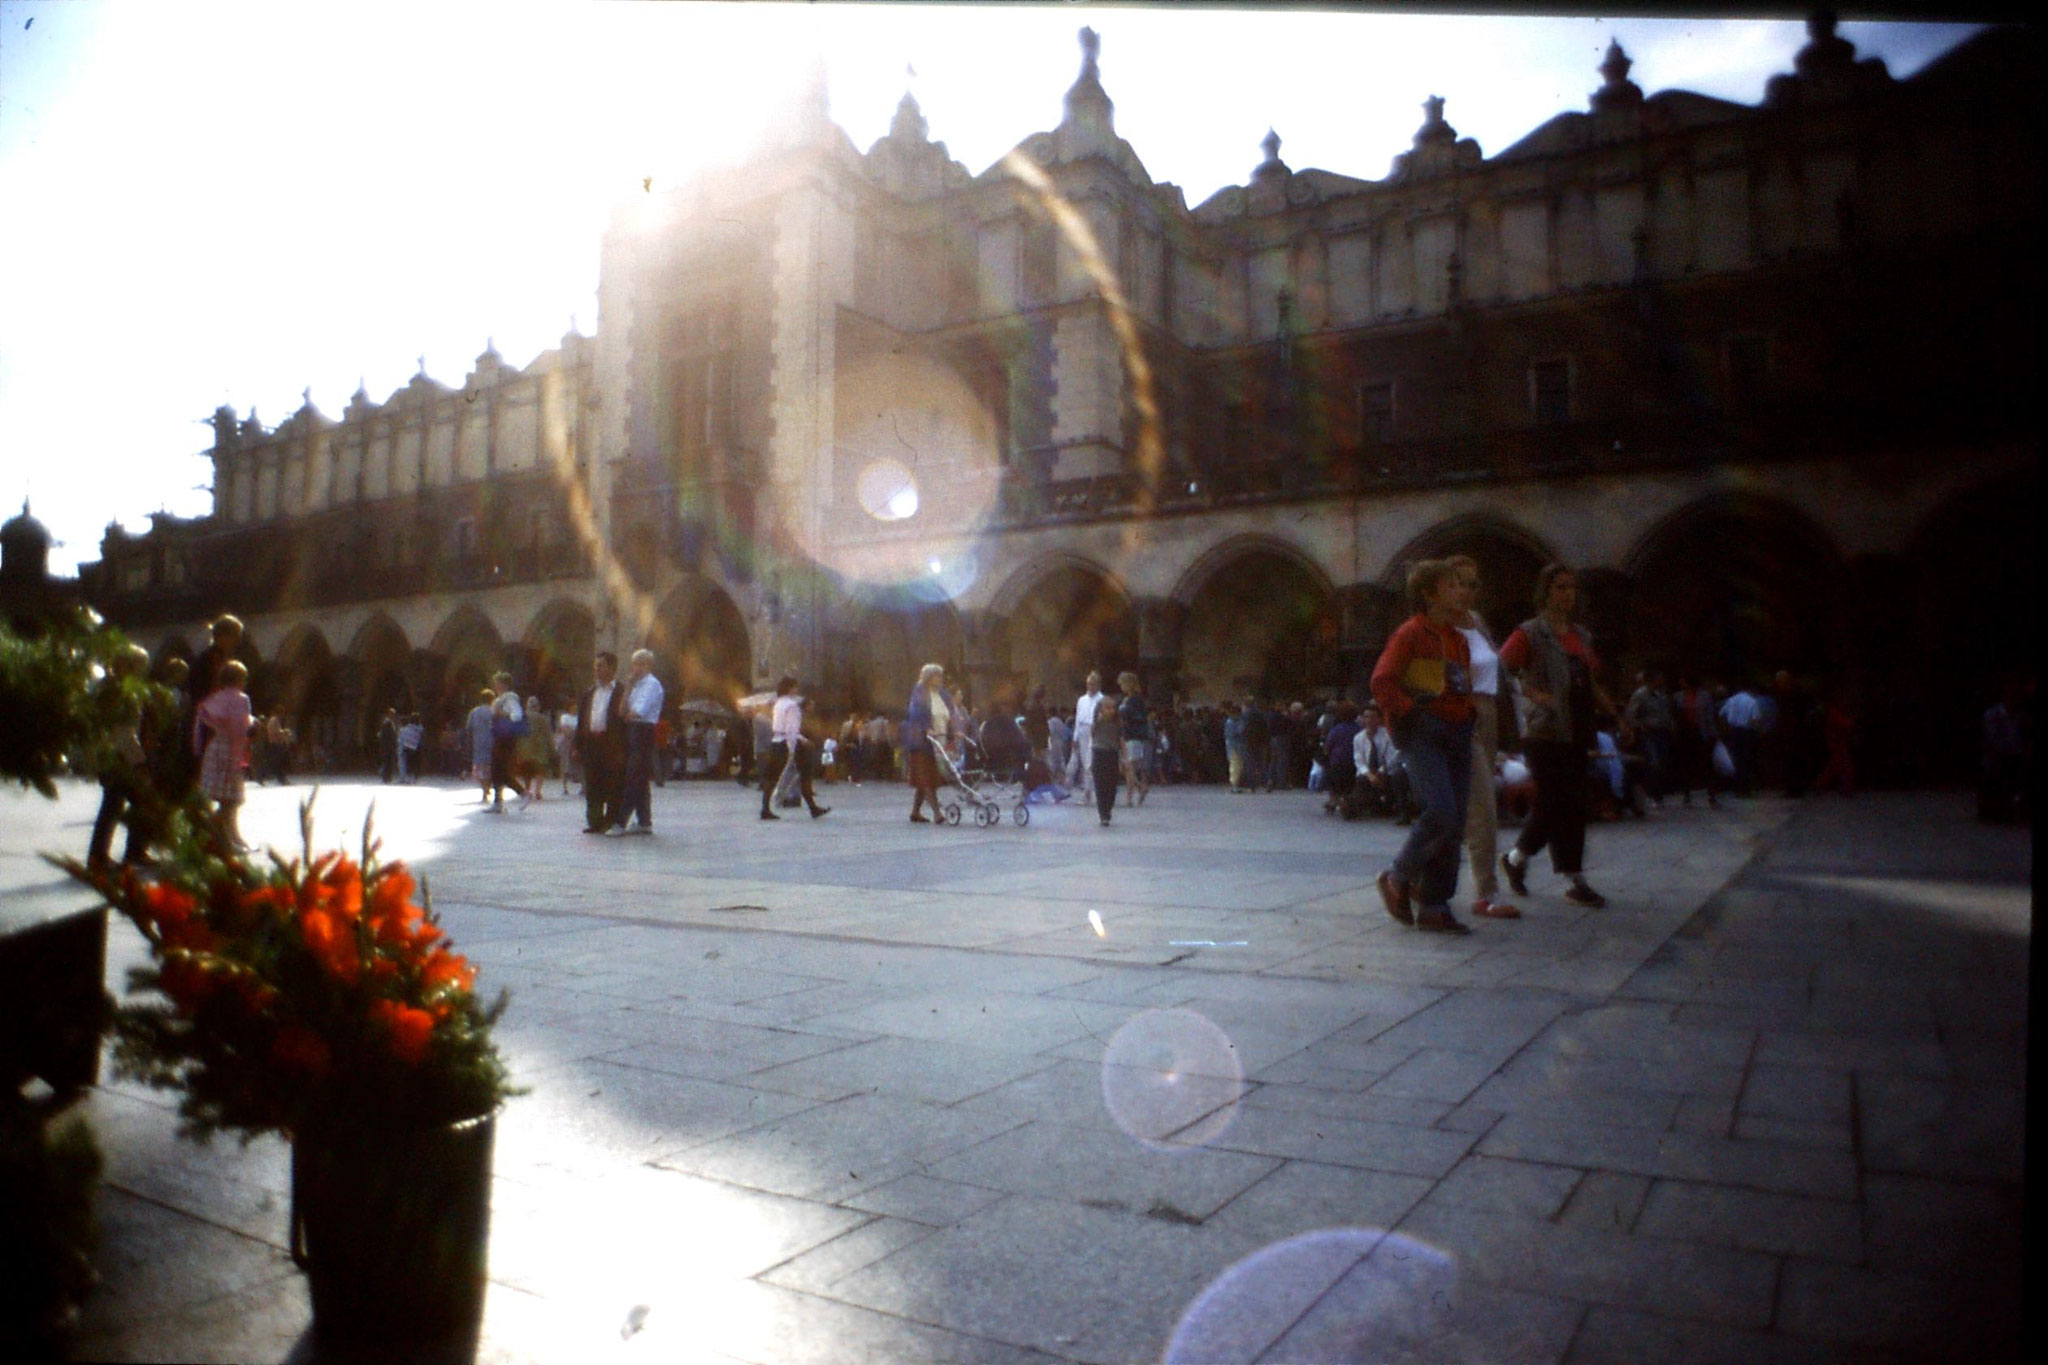 24/8/1988: 5: Krakow, Cloth Hall